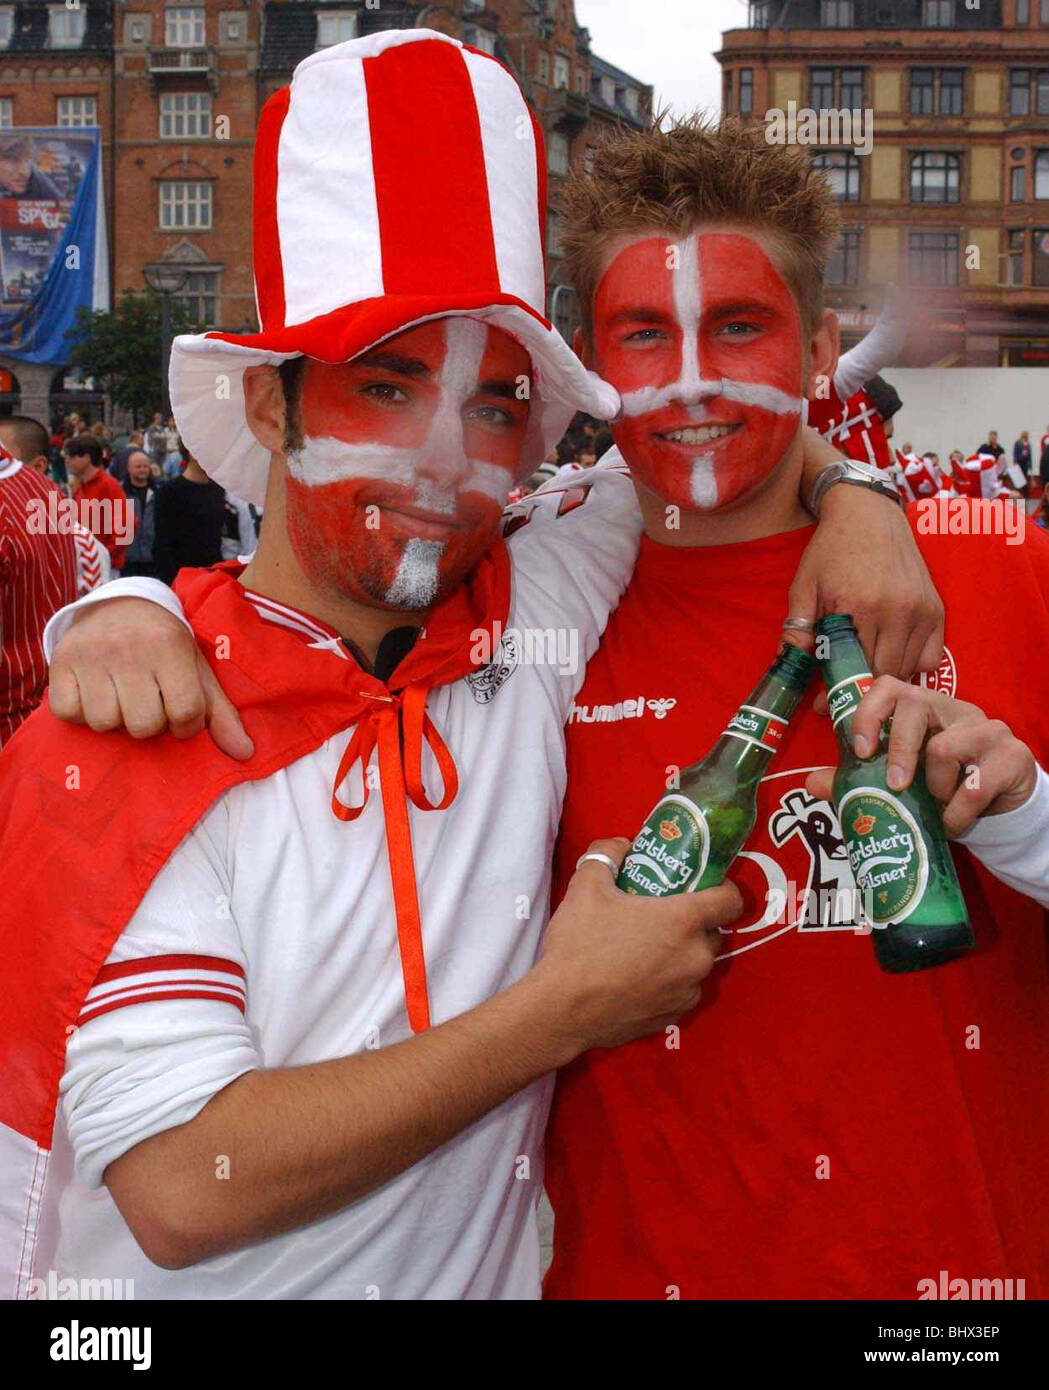 Football Fans Supporters June 2002 Pictured ahead of England v Denmark 2nd Round Match Danish fans gather in central - Stock Image